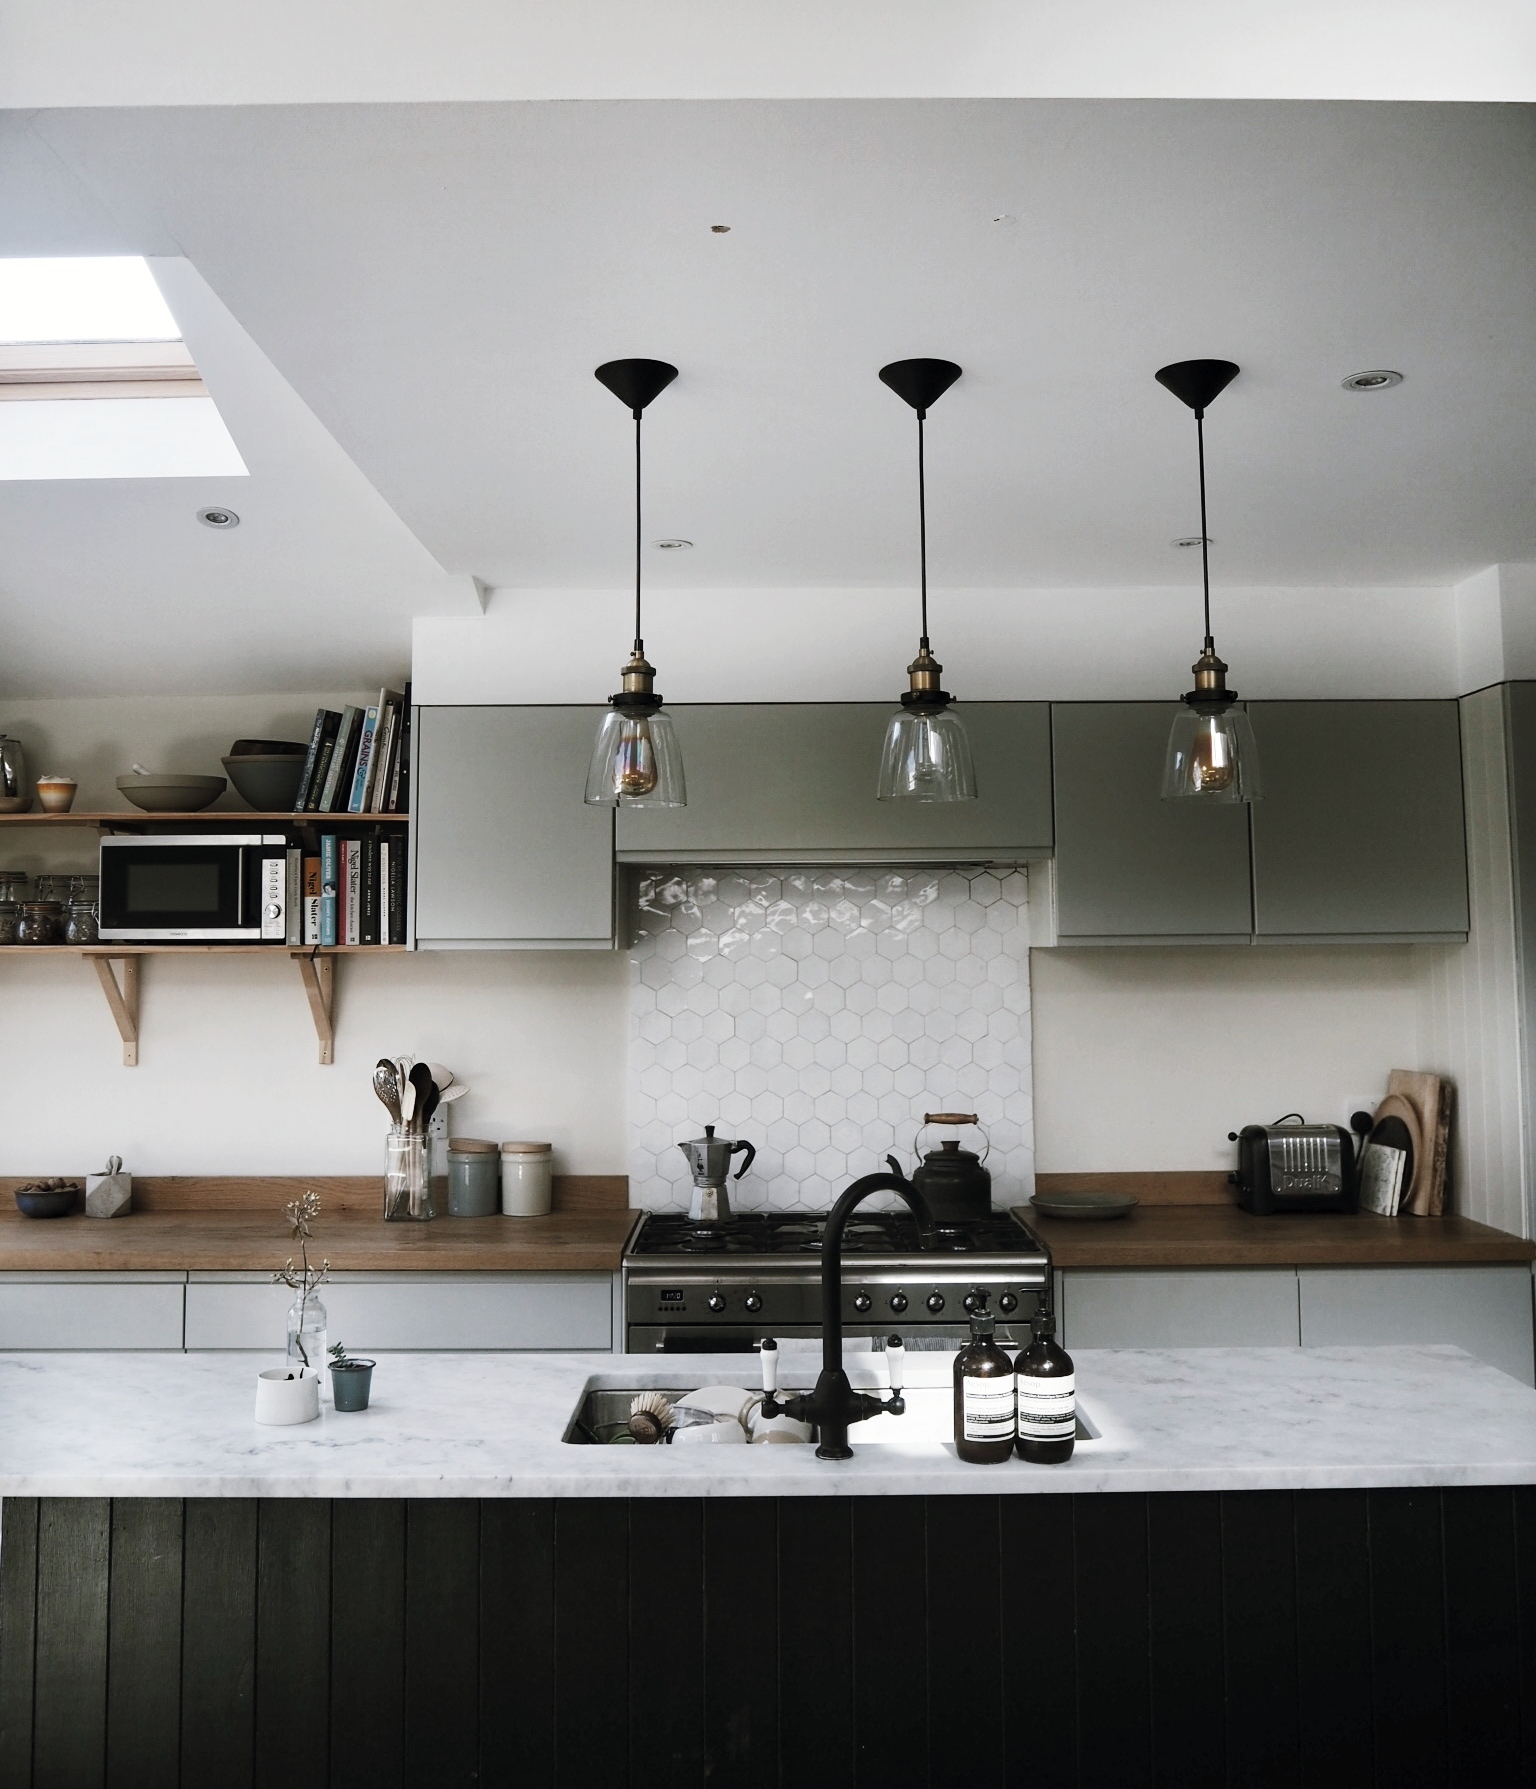 Modern Rustic David Bailey getting to grips with her ISOs and Apertures in Emily's gorgeous kitchen